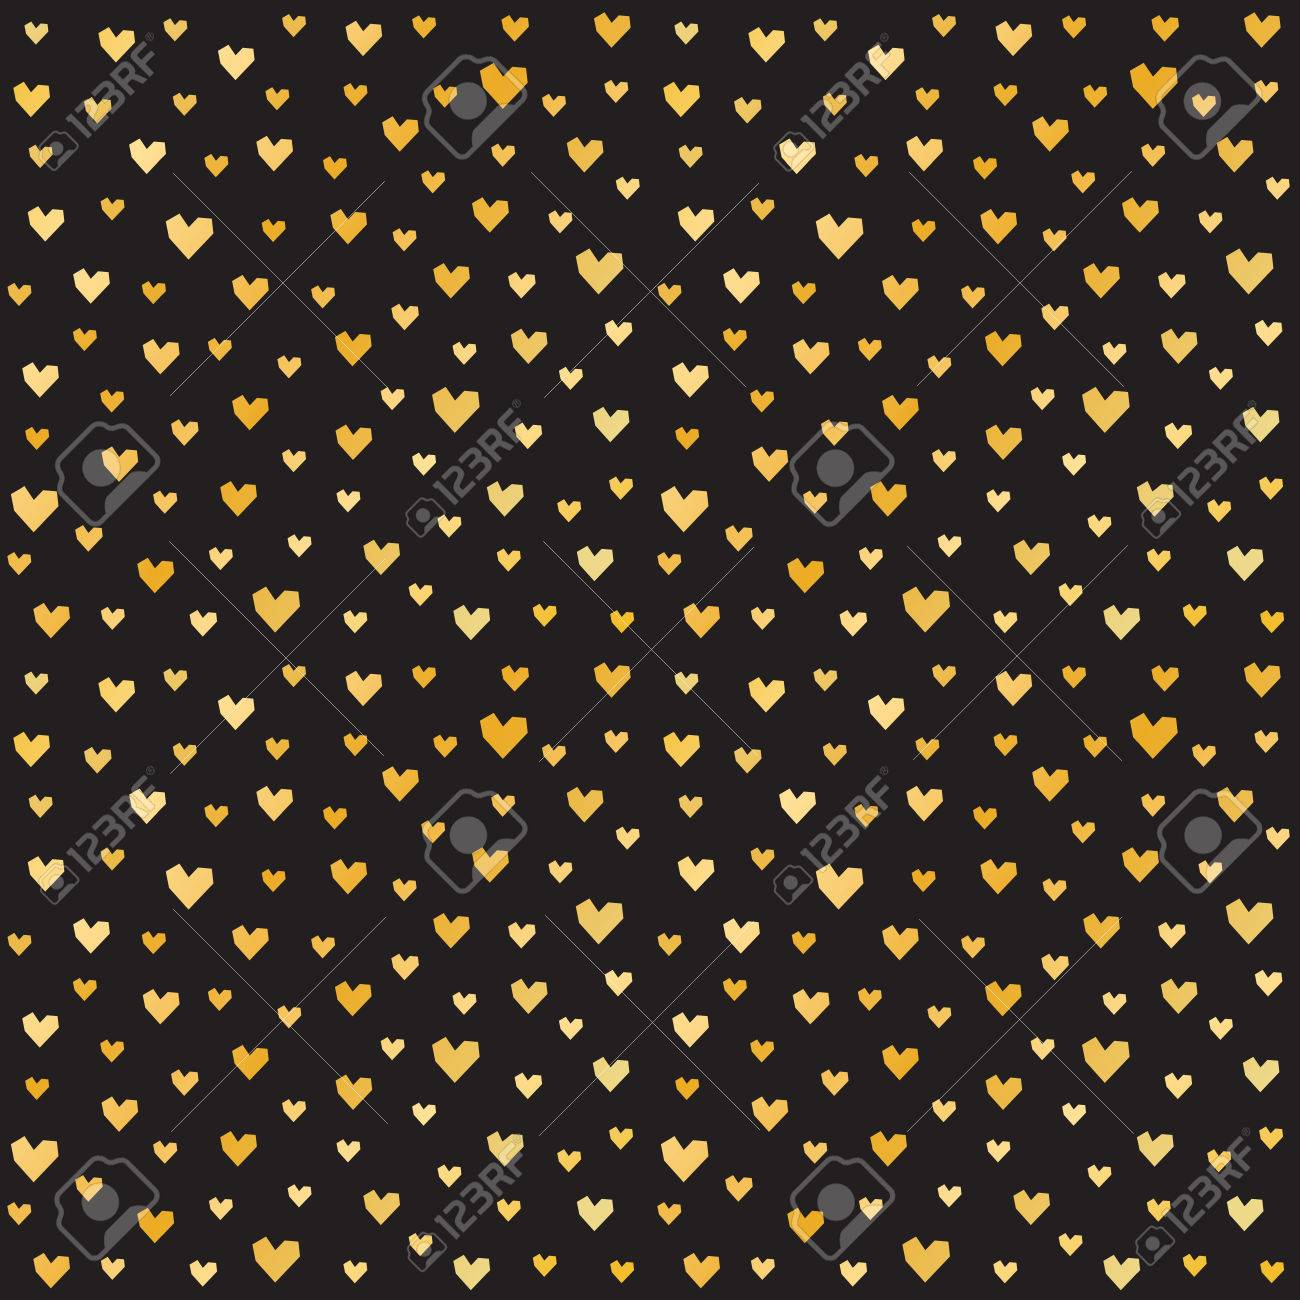 Romantic vector seamless background greeting card wallpaper vector art -  Greeting Cards Wallpaper Textiles Seamless Romantic Pattern For Valentines Day With Gold Hearts On Black Background Minimal Repeat Background